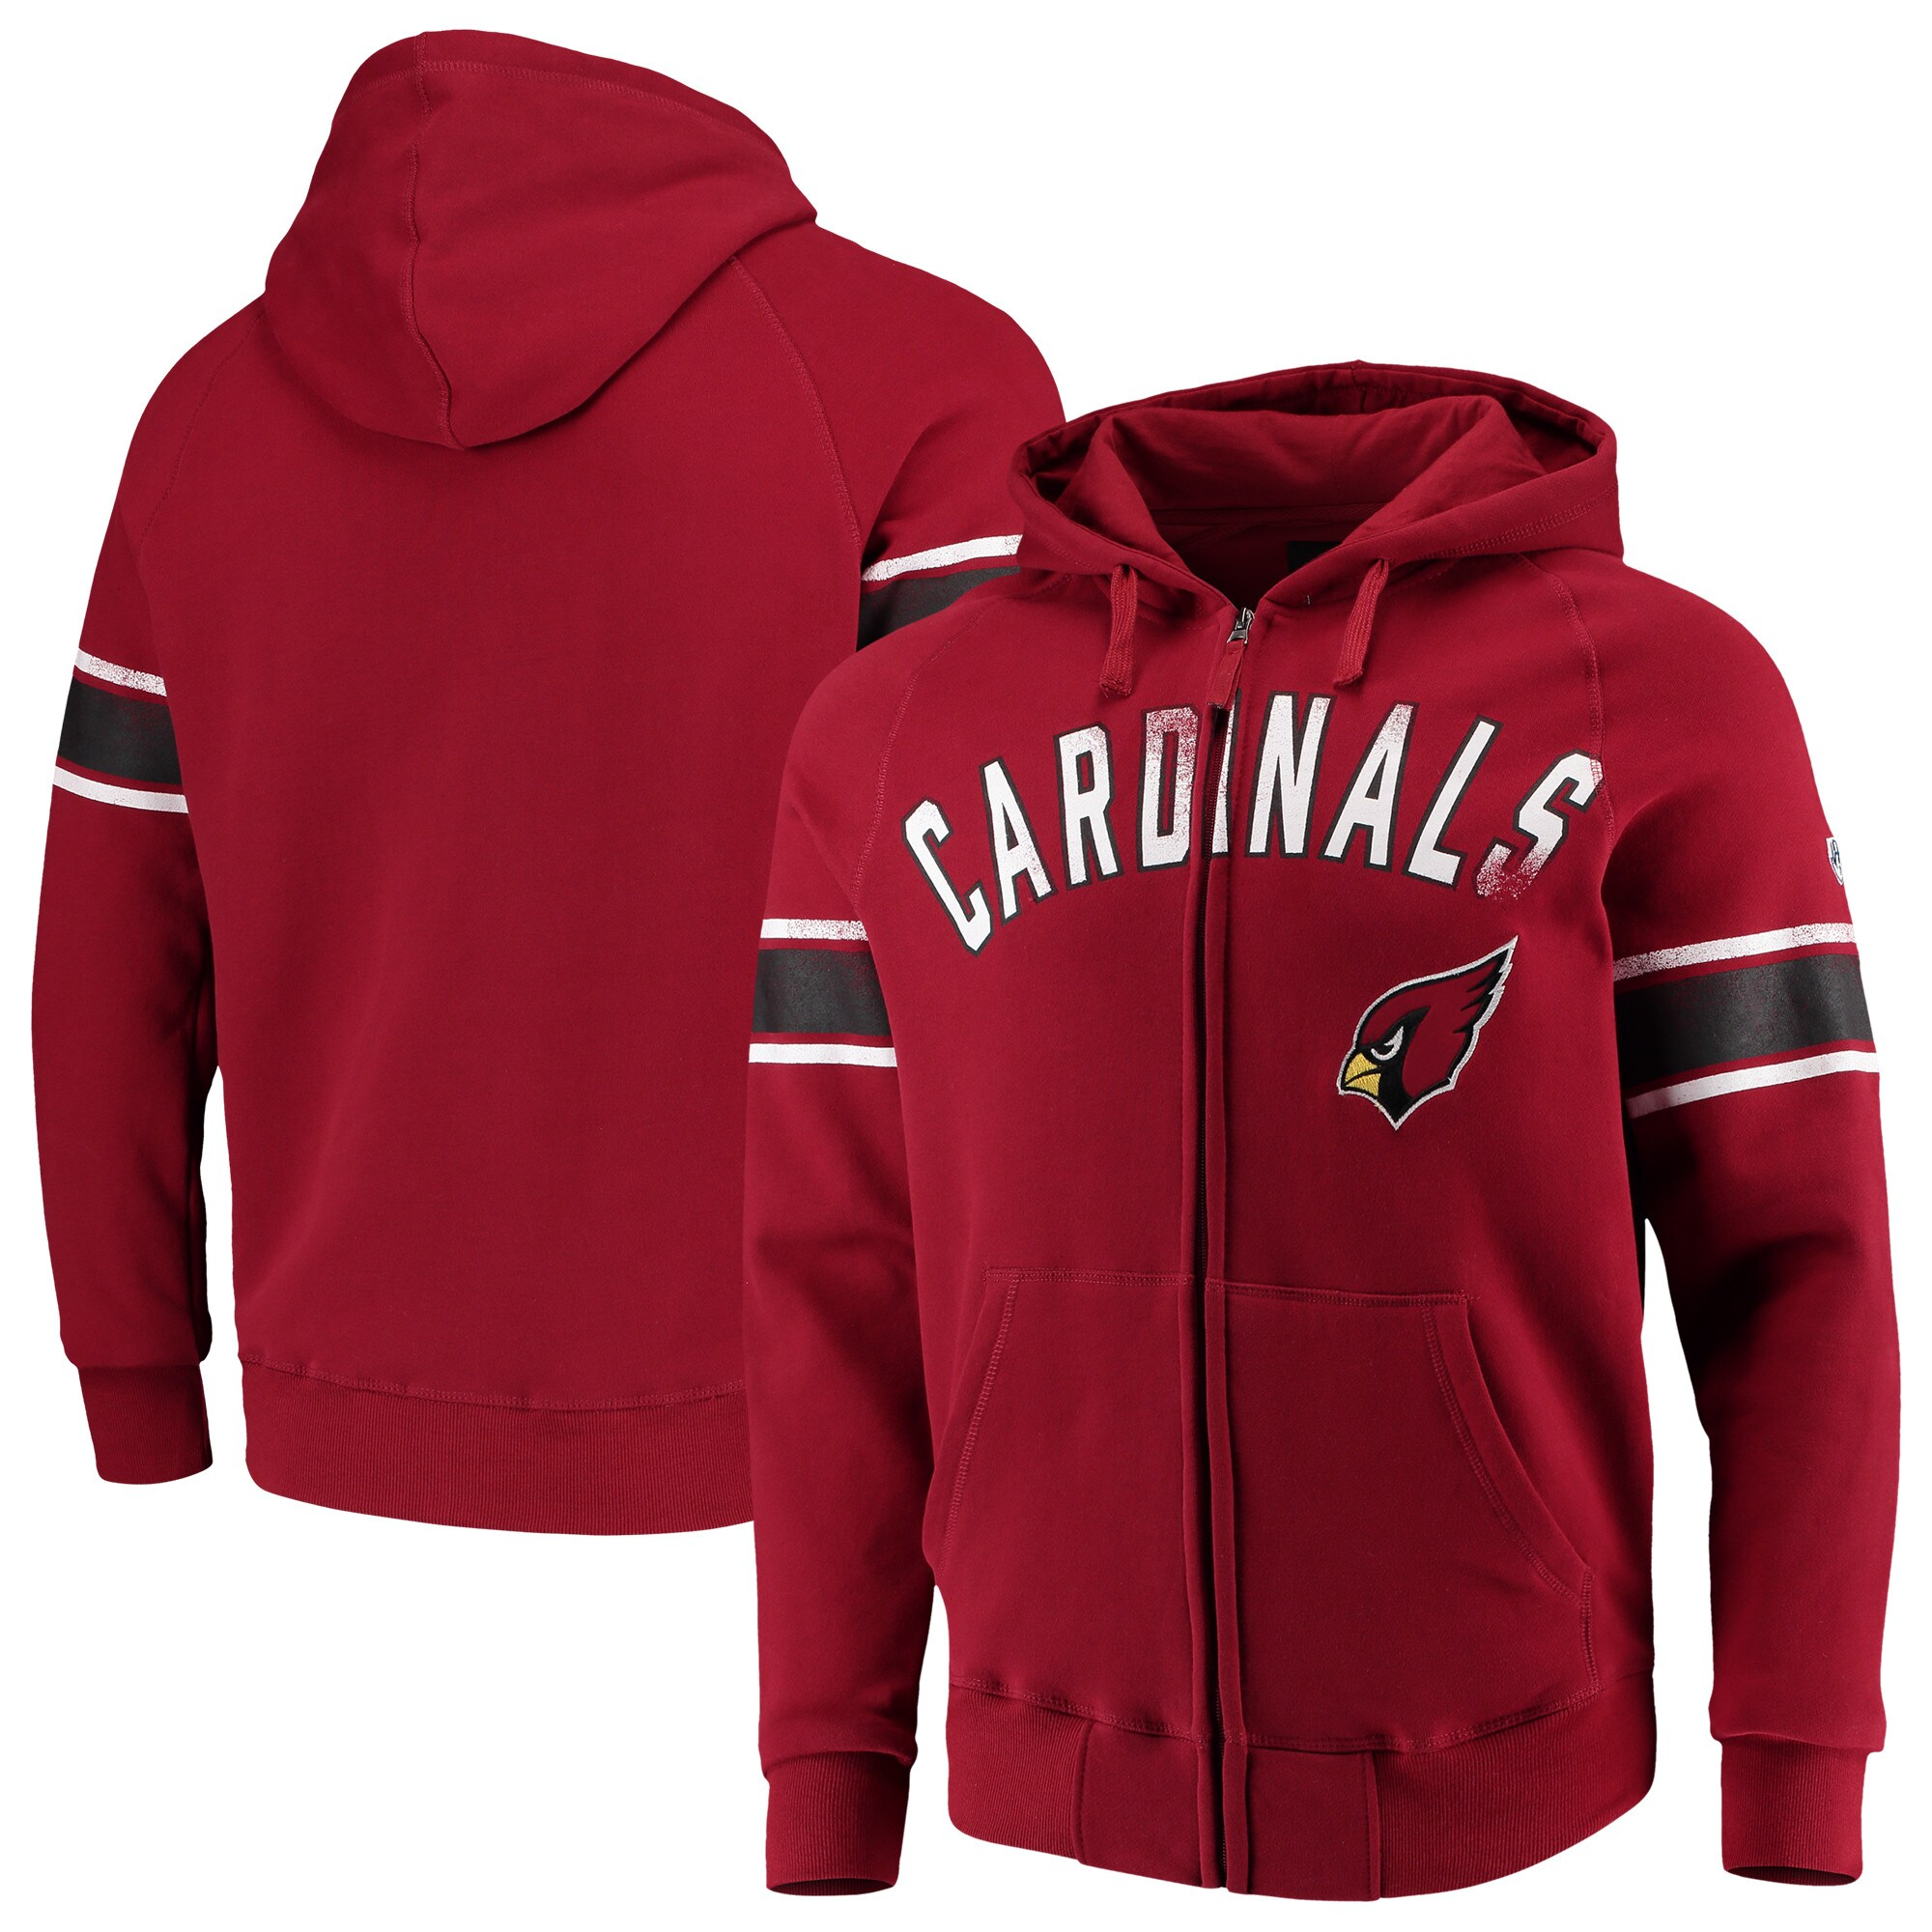 Arizona Cardinals Hands High Arena Full-Zip Hoodie - Cardinal